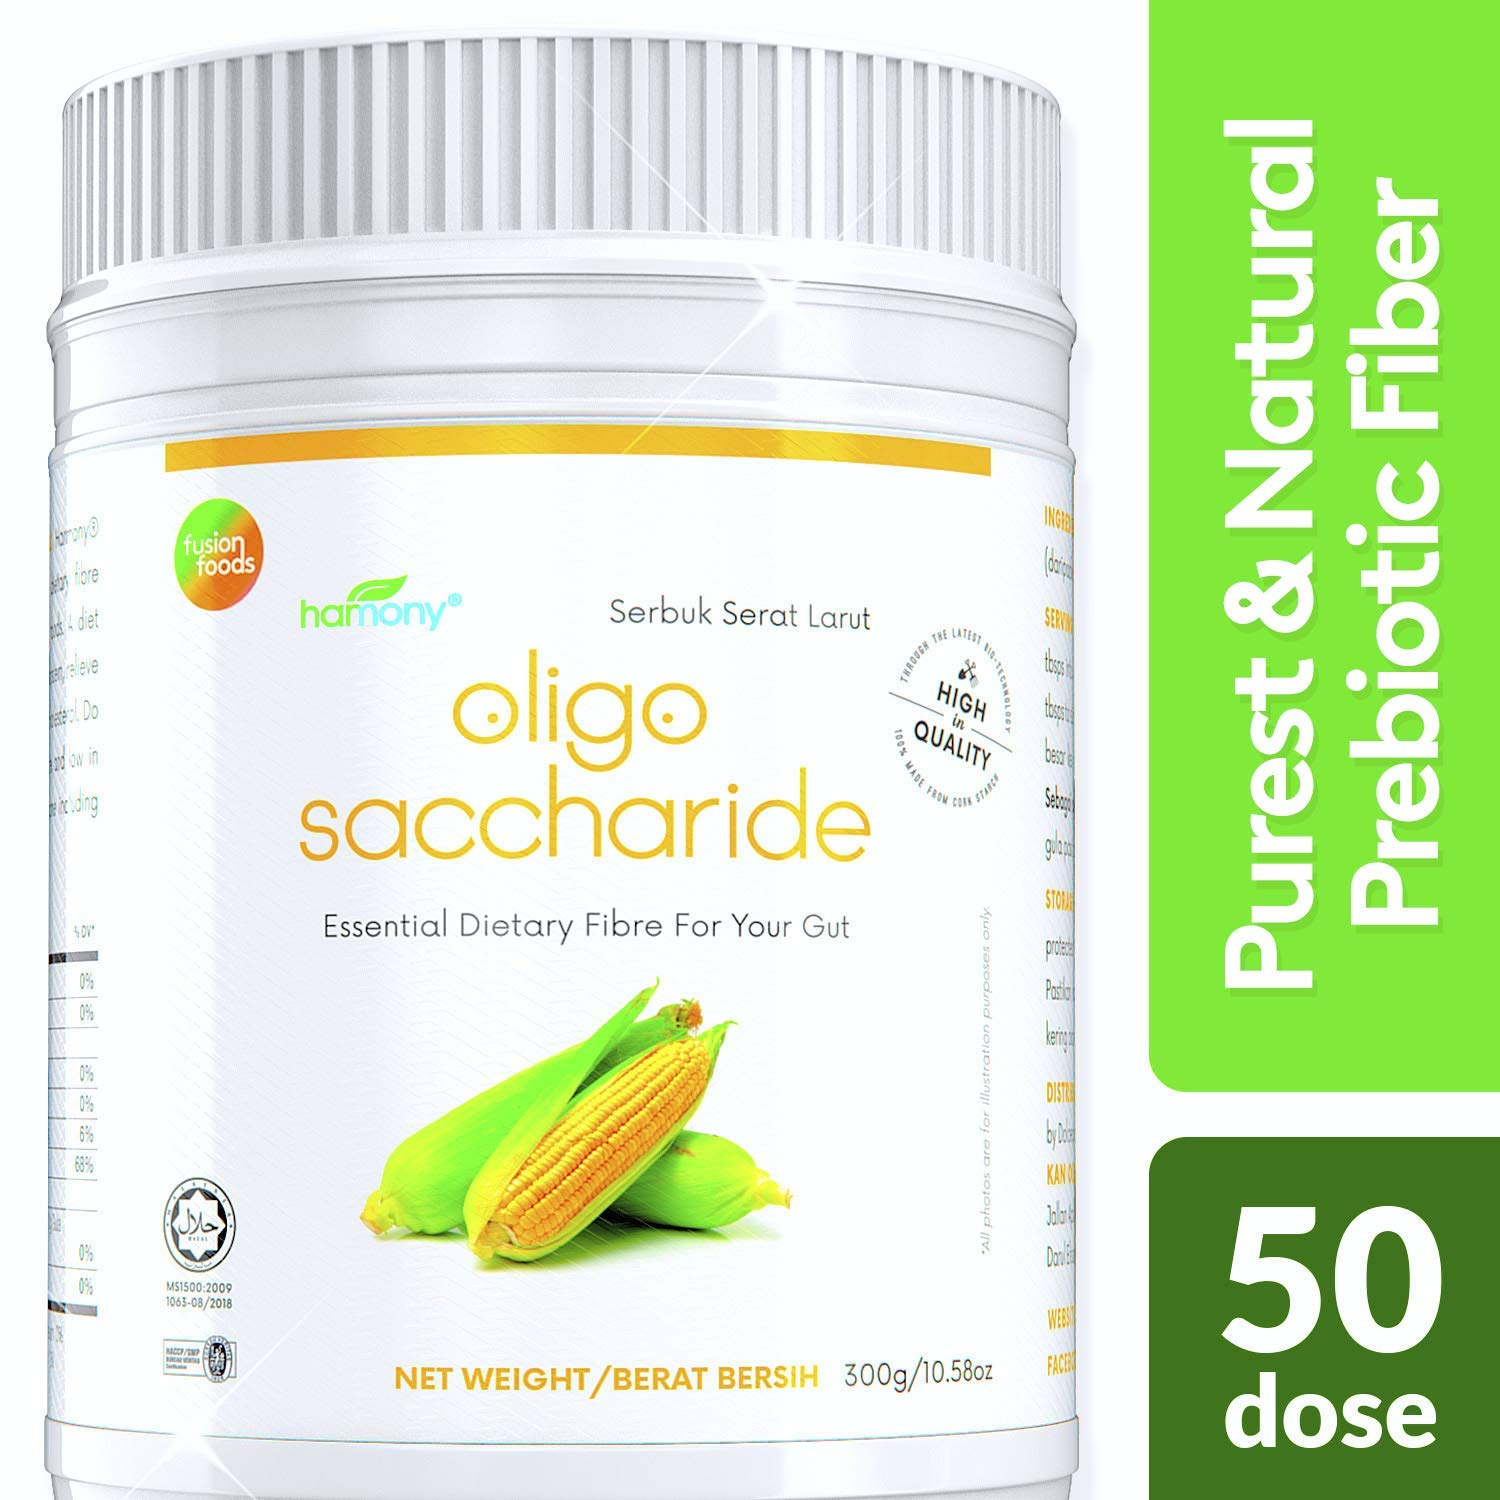 100% Natural Prebiotic Fiber for Probiotic Support | Rejuvenate Gut Health | Energy & Immune Prebiotics Supplement for Weight Loss & Mood | 10x More Effective with 90% Purity IMO900 Soluble Fiber 300g by fusionfoods